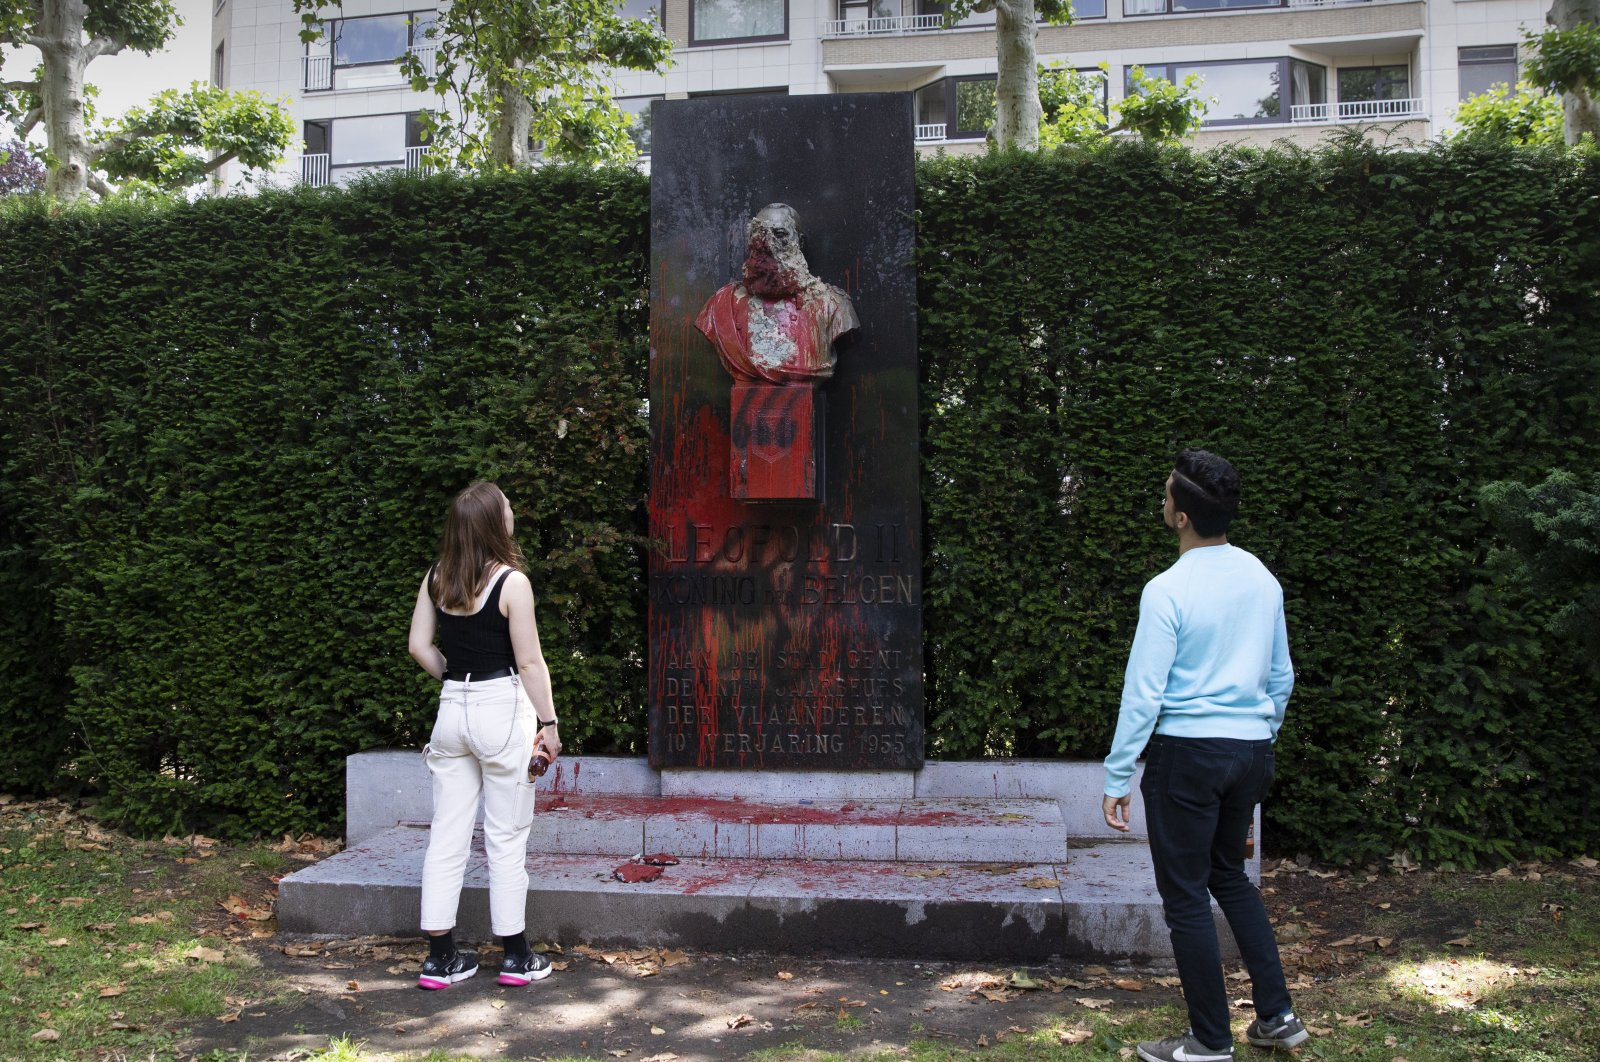 A couple stop to look at a bust of Belgium's King Leopold II, which has been damaged by red paint, graffiti and cement, at a park in Ghent, Belgium on Friday, June 19, 2020. Protests sweeping the world after George Floyd's death in the U.S. have added fuel to a movement to confront Europe's role in the slave trade and its colonial past.(AP Photo)